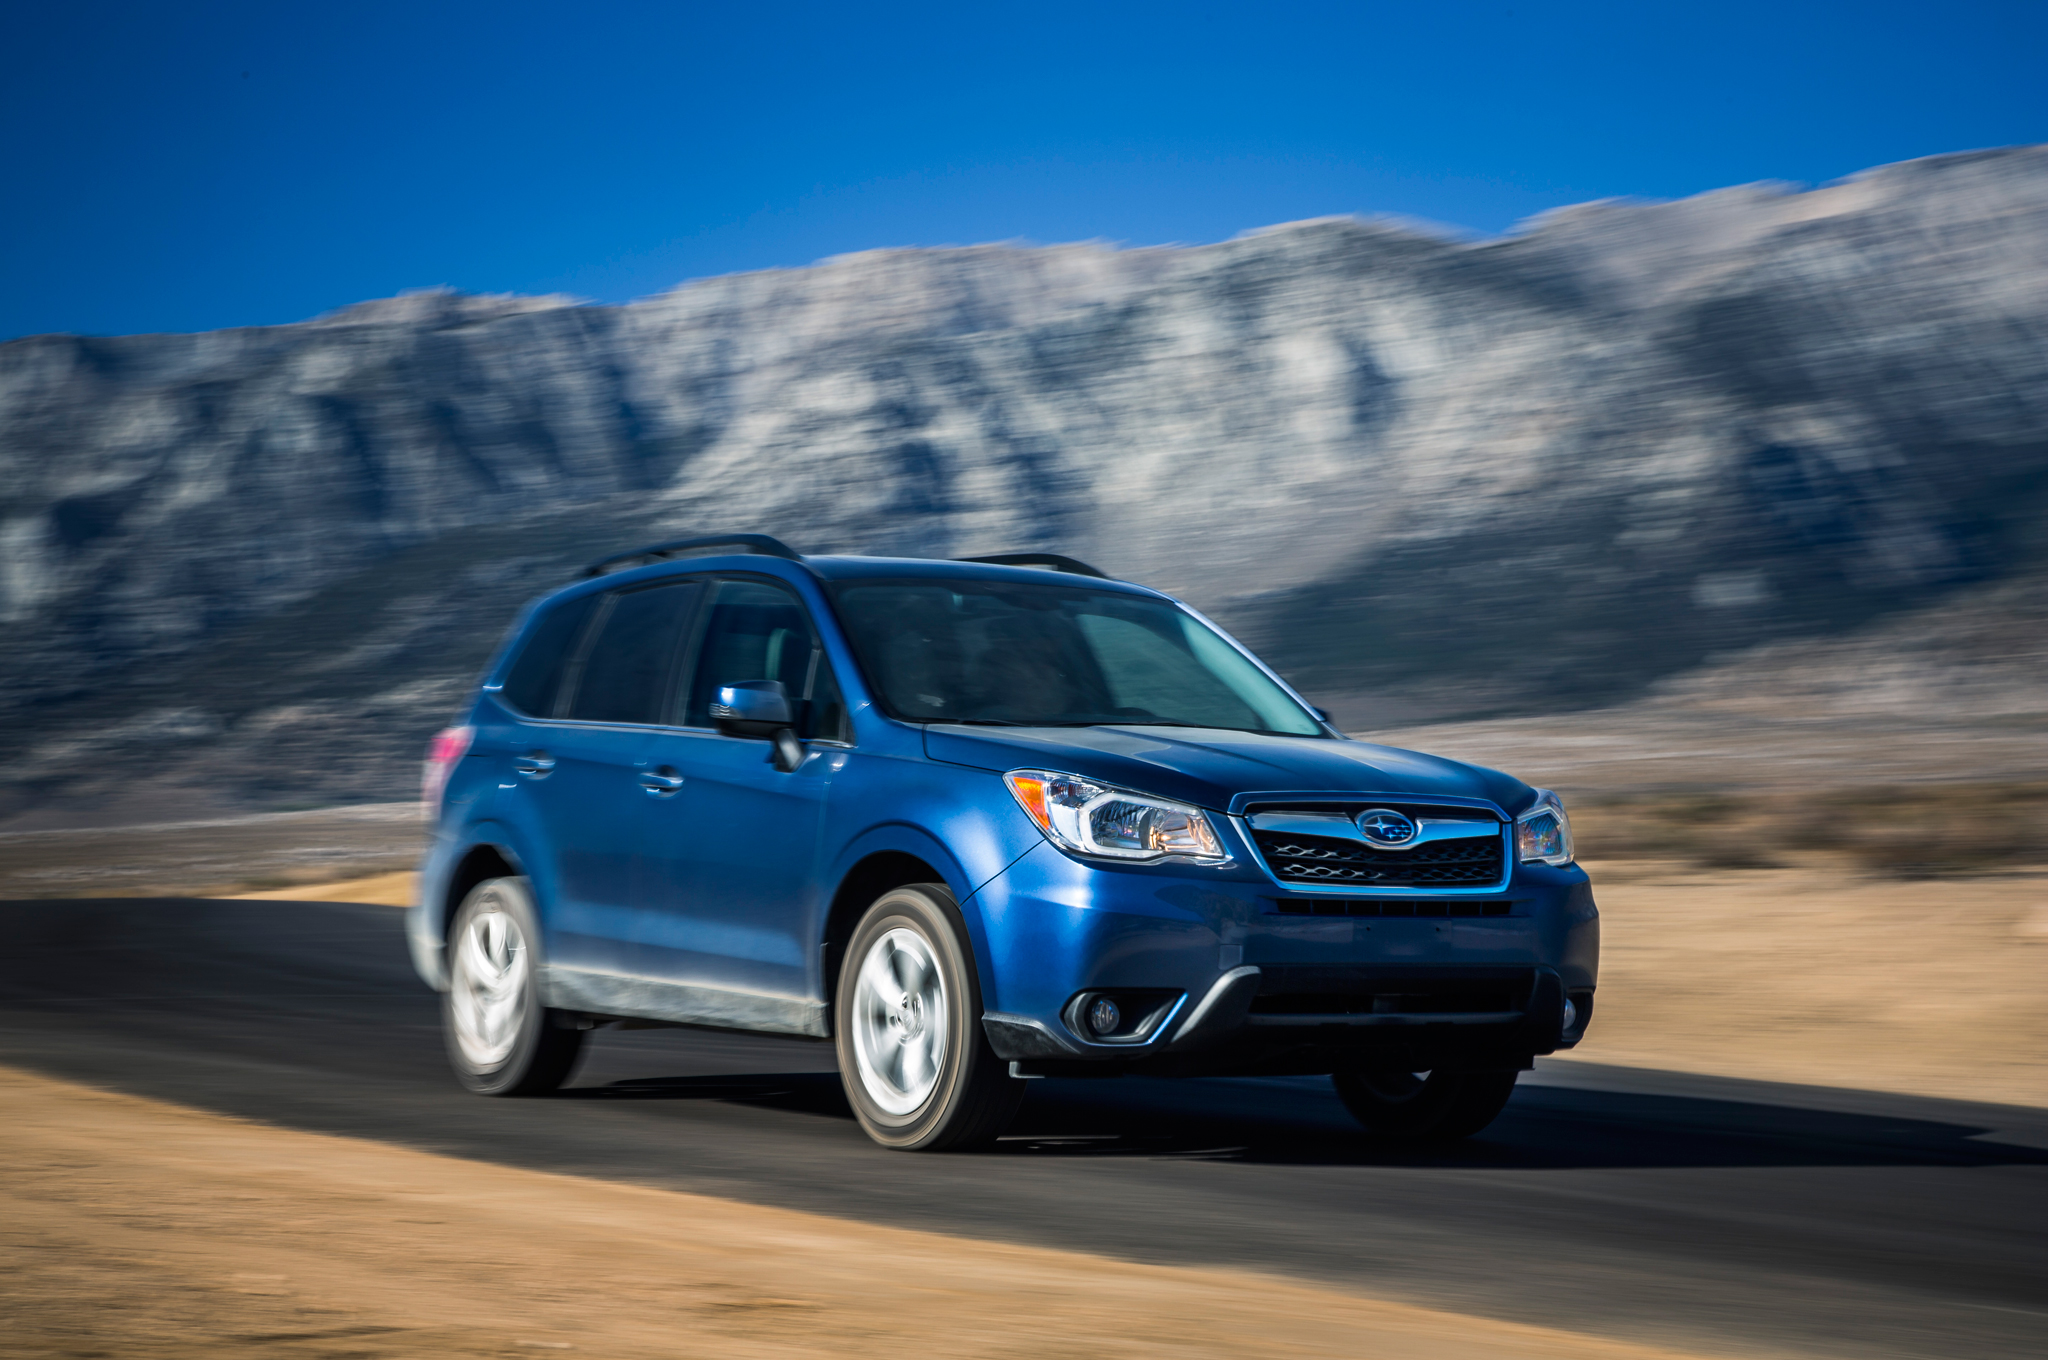 2014 Motor Trend SUV of the Year Winner: Subaru Forester